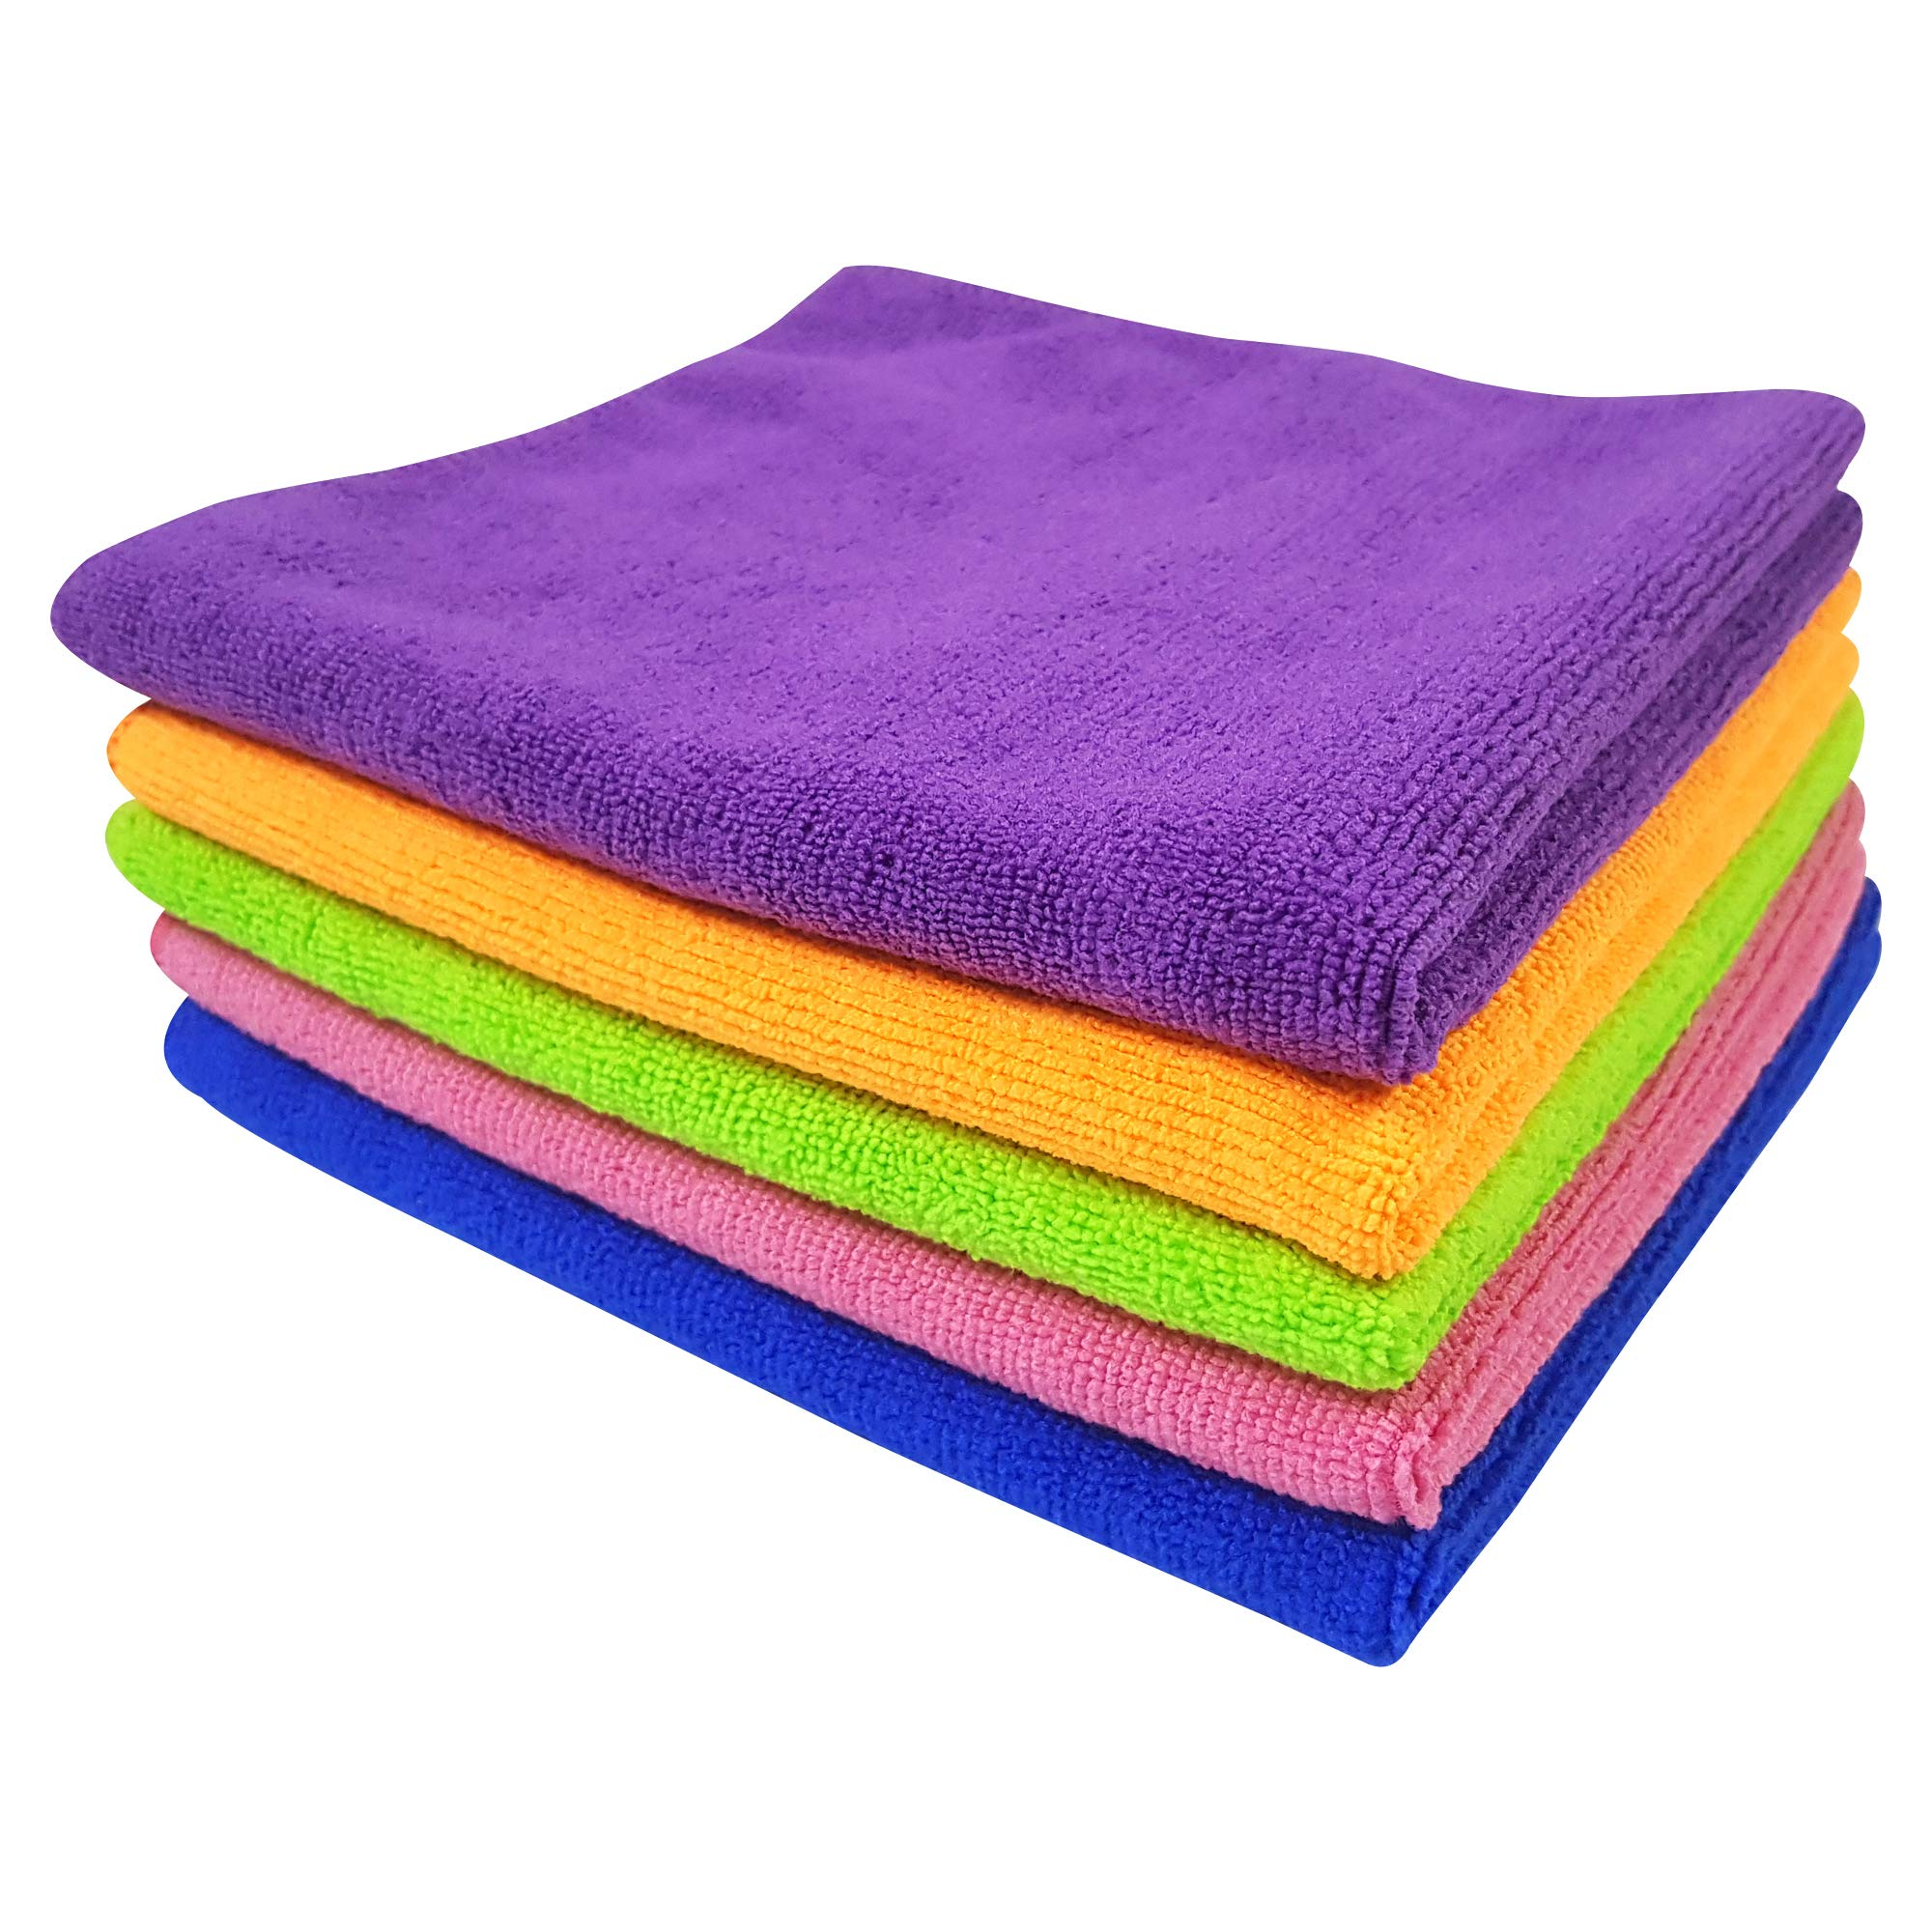 Softspun Microfiber Car Cleaning Cloth (Set of 5, Multicolour) product image